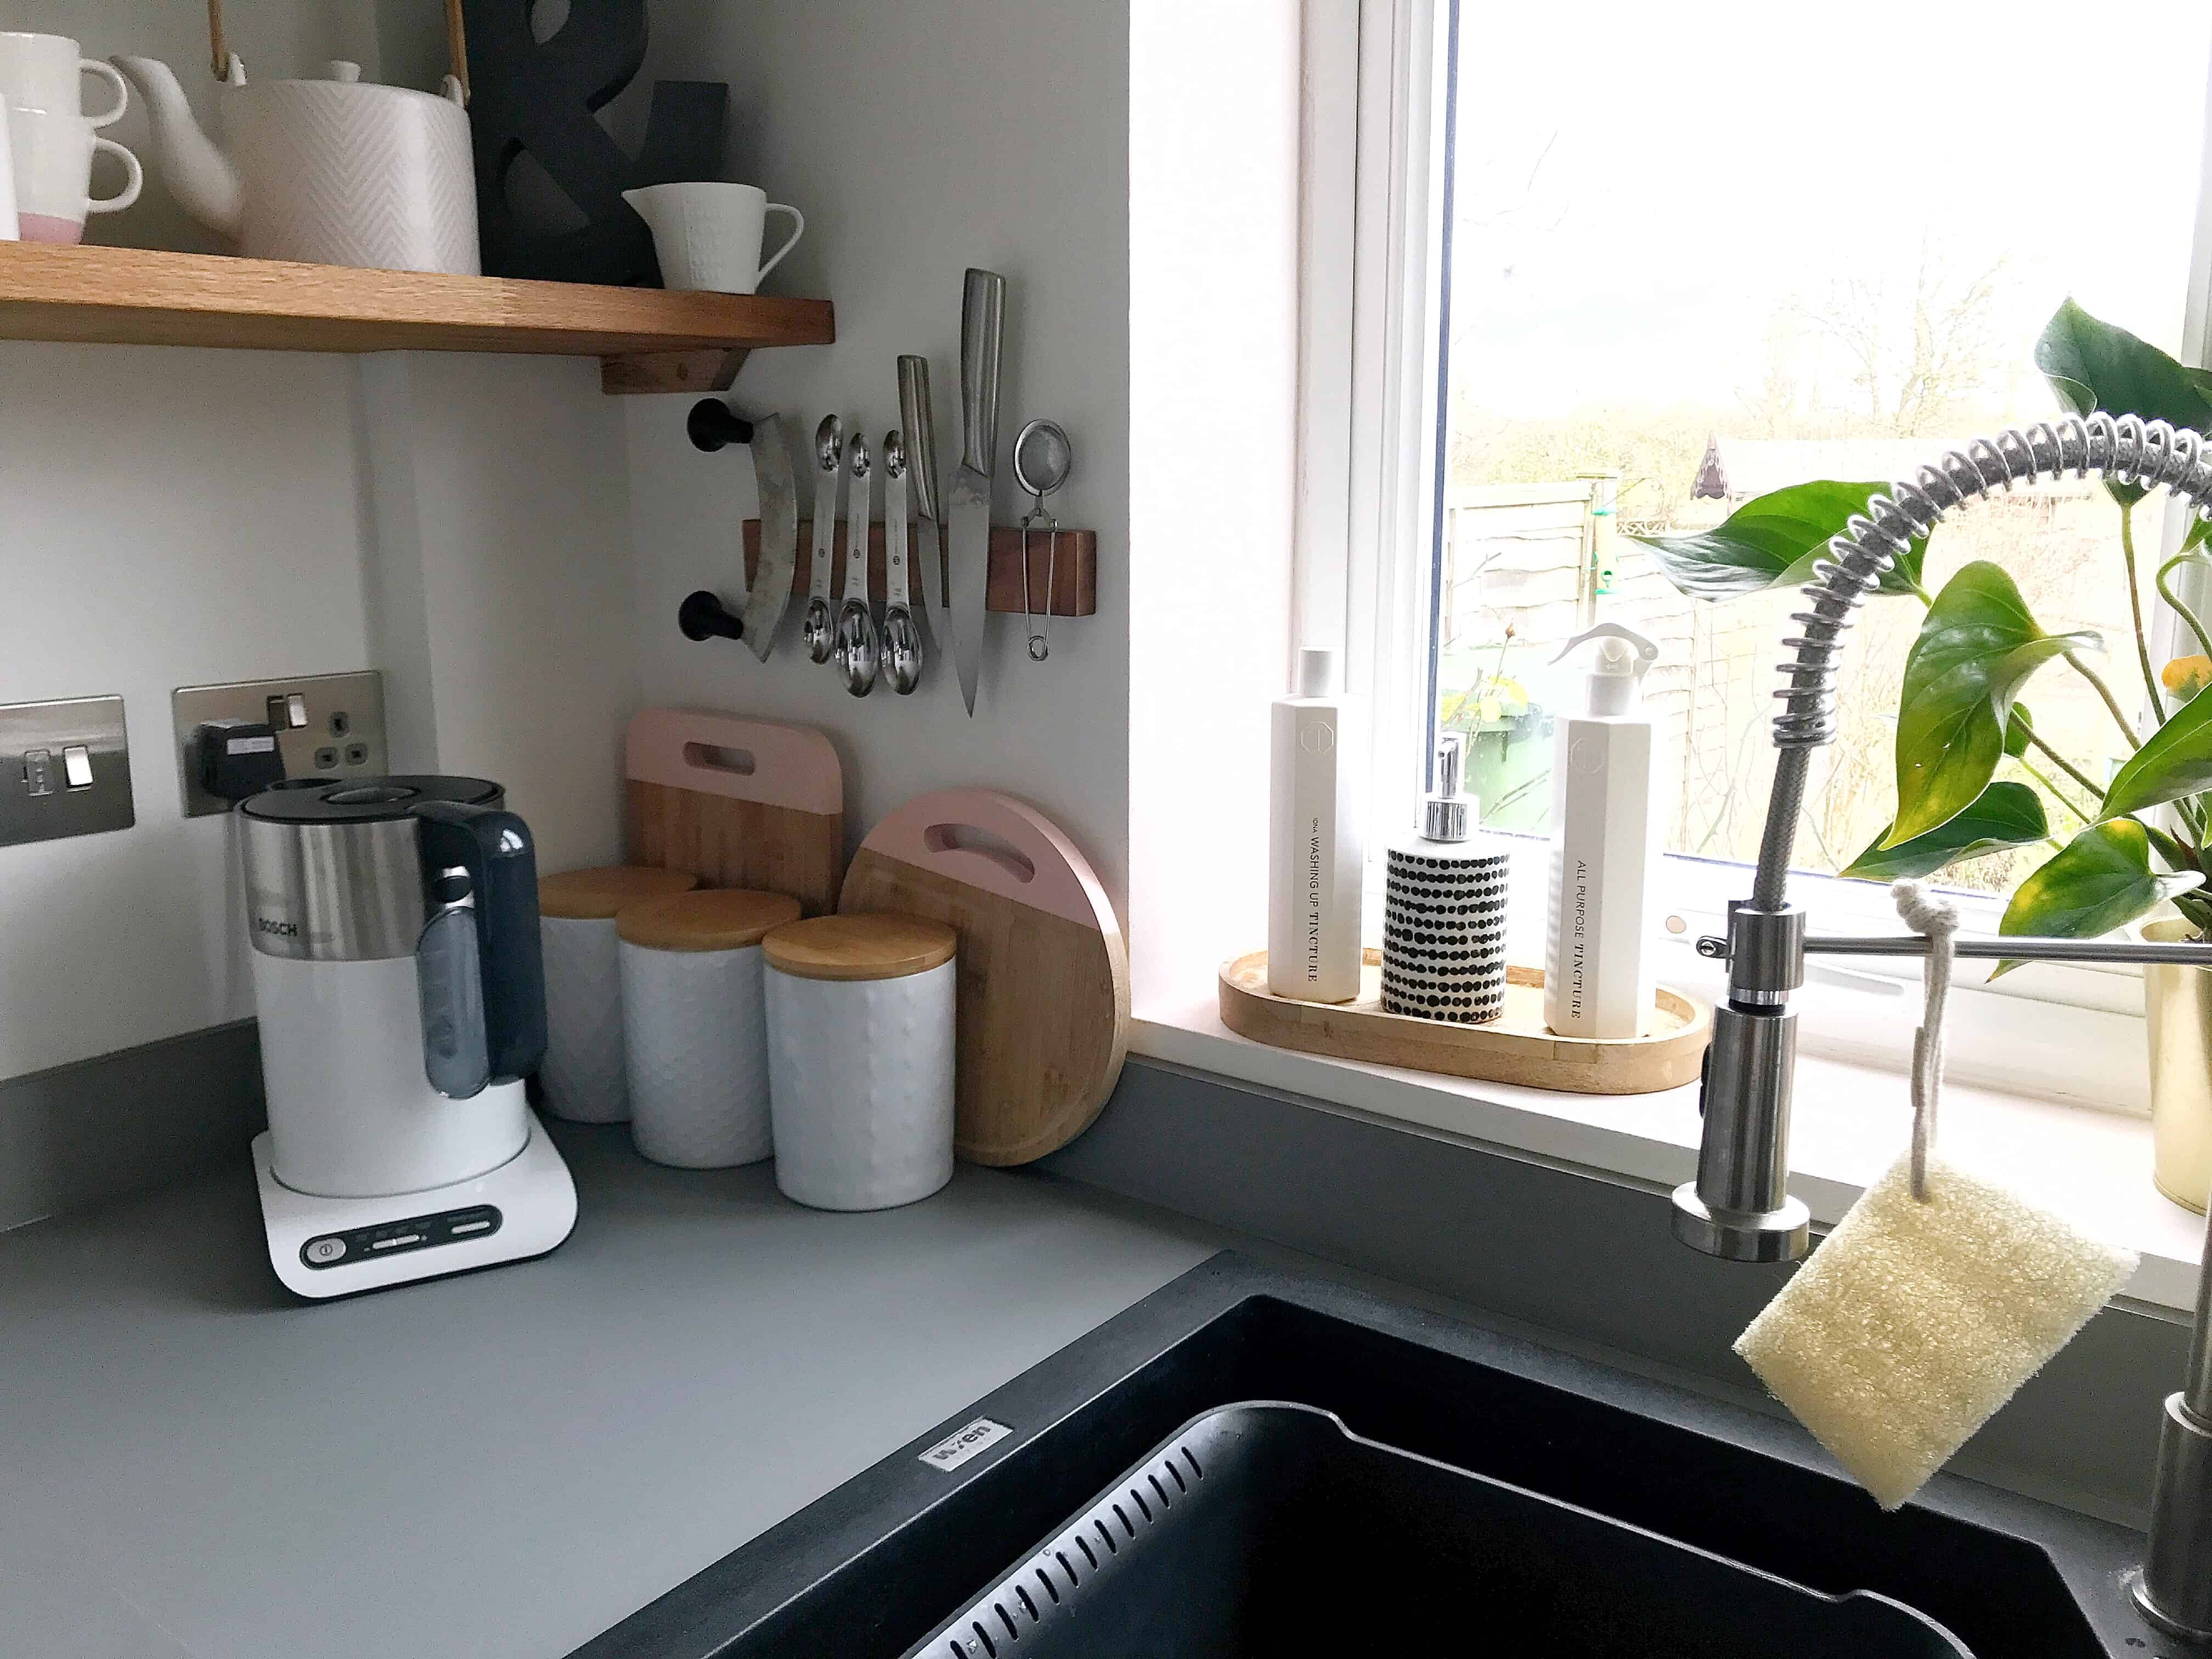 Creating a cleaner, healthier home with eco-friengly cleaning and laundry ideas